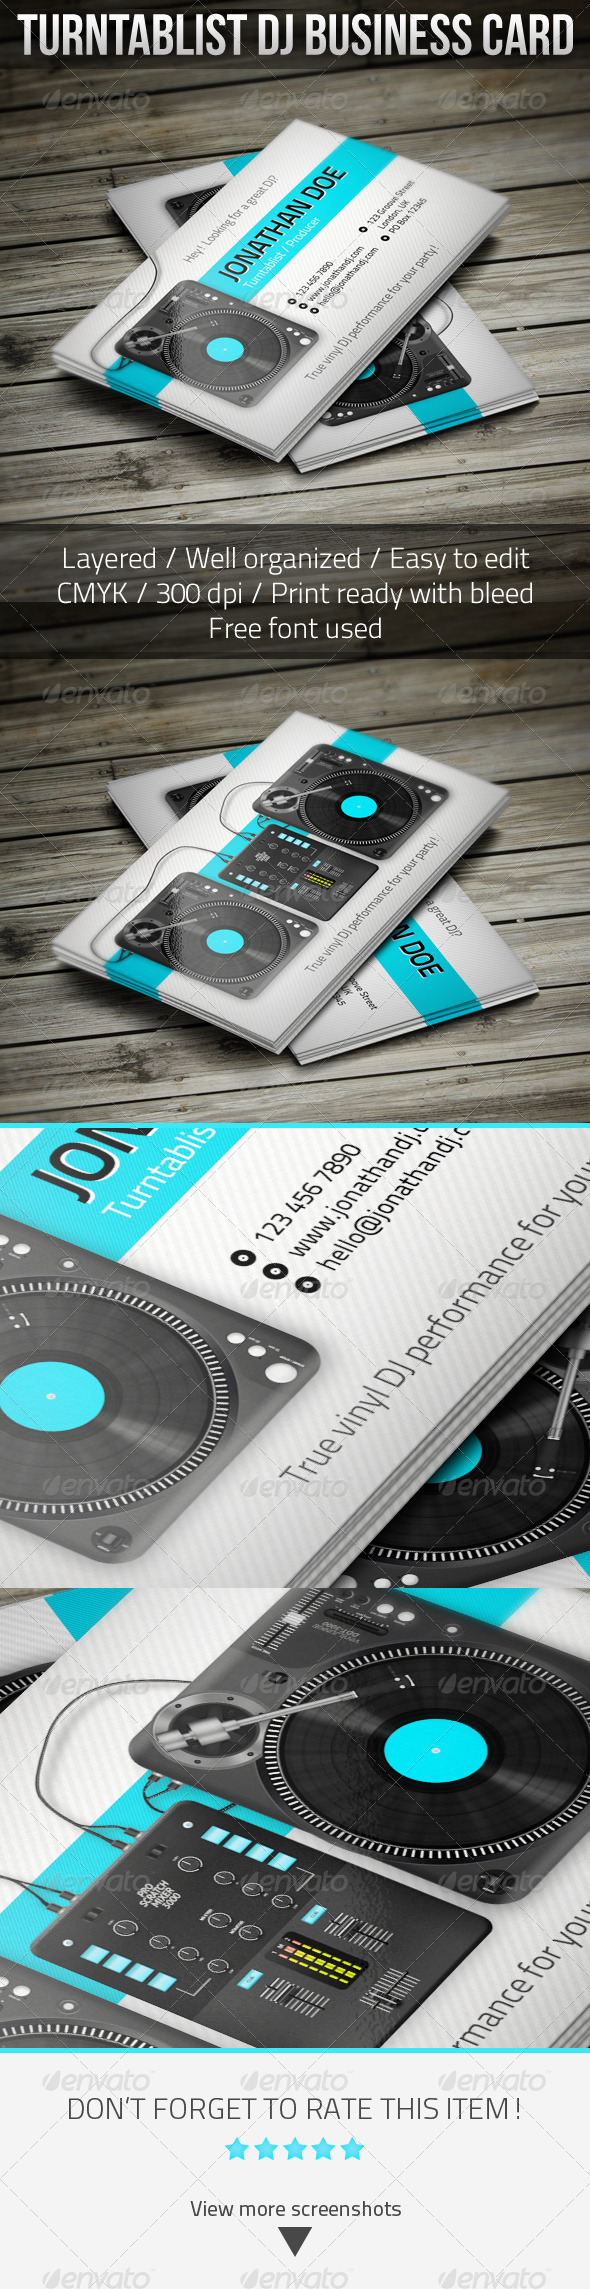 Turntablist dj business card dj business cards business cards and dj turntablist dj business card template psd download here httpgraphicriver wajeb Gallery